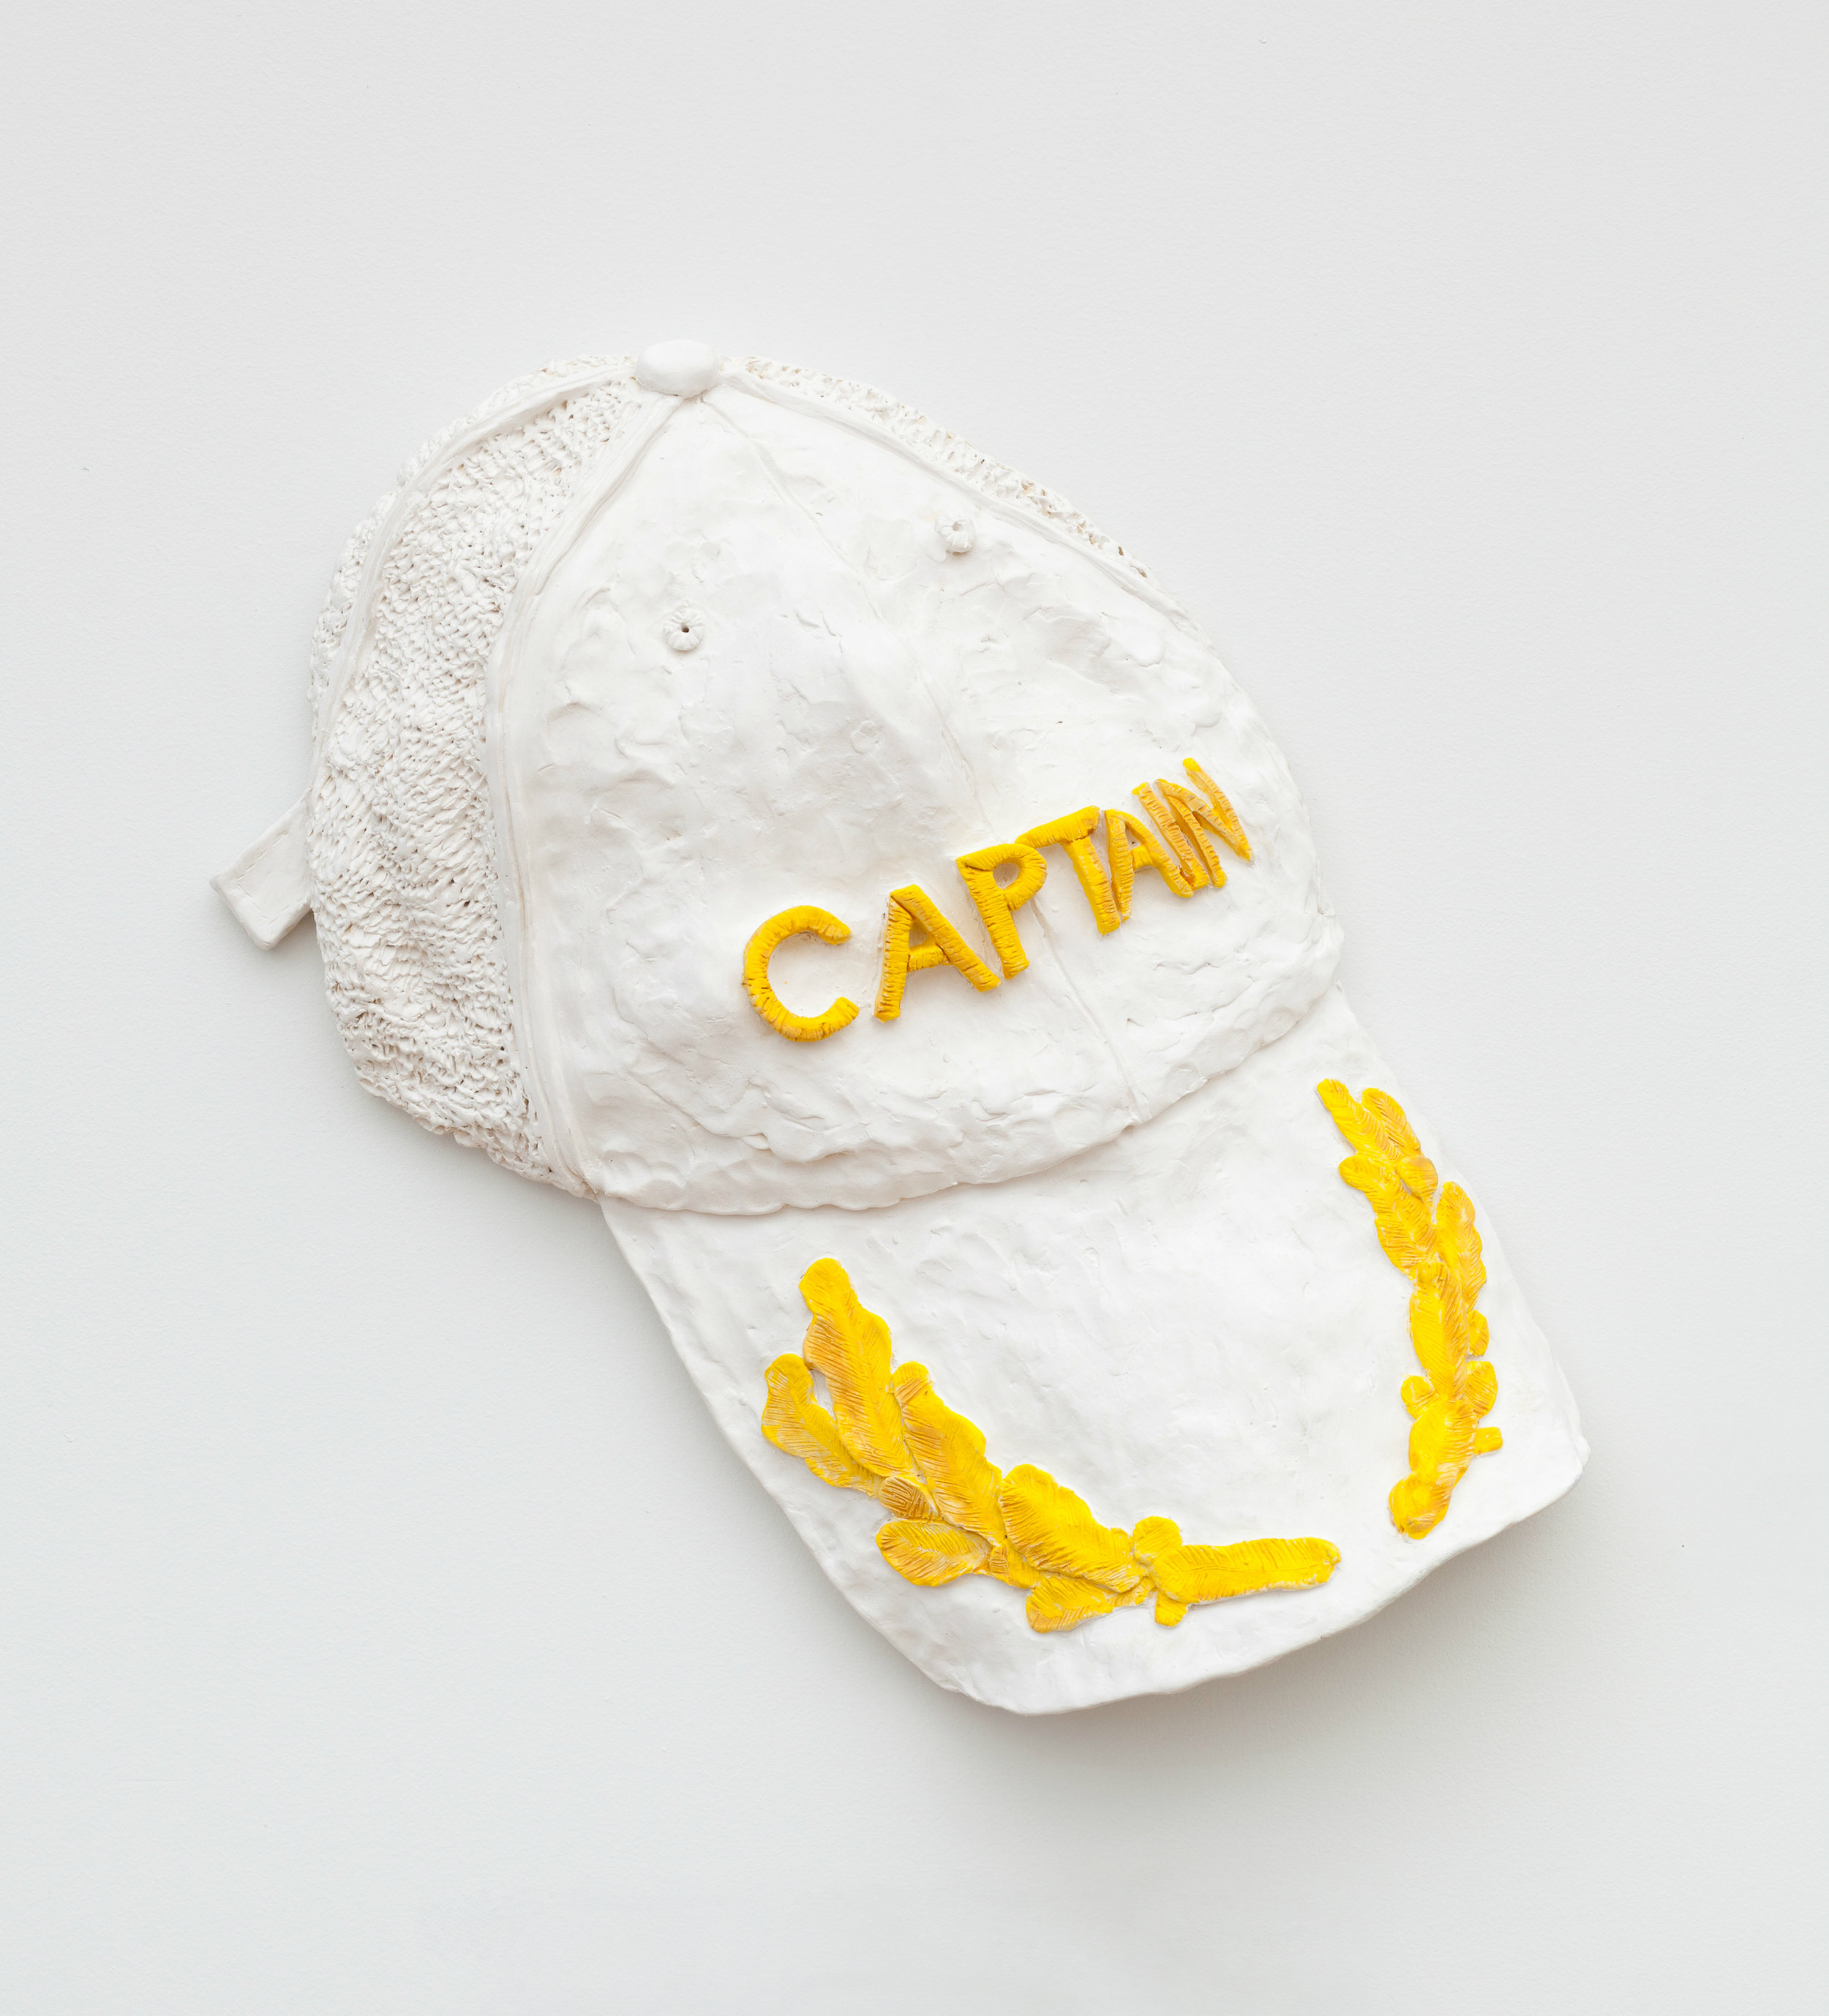 "Did you let your father buy that Captain's hat?   17"" x 14"" x 2"" / Ceramic / 2015"